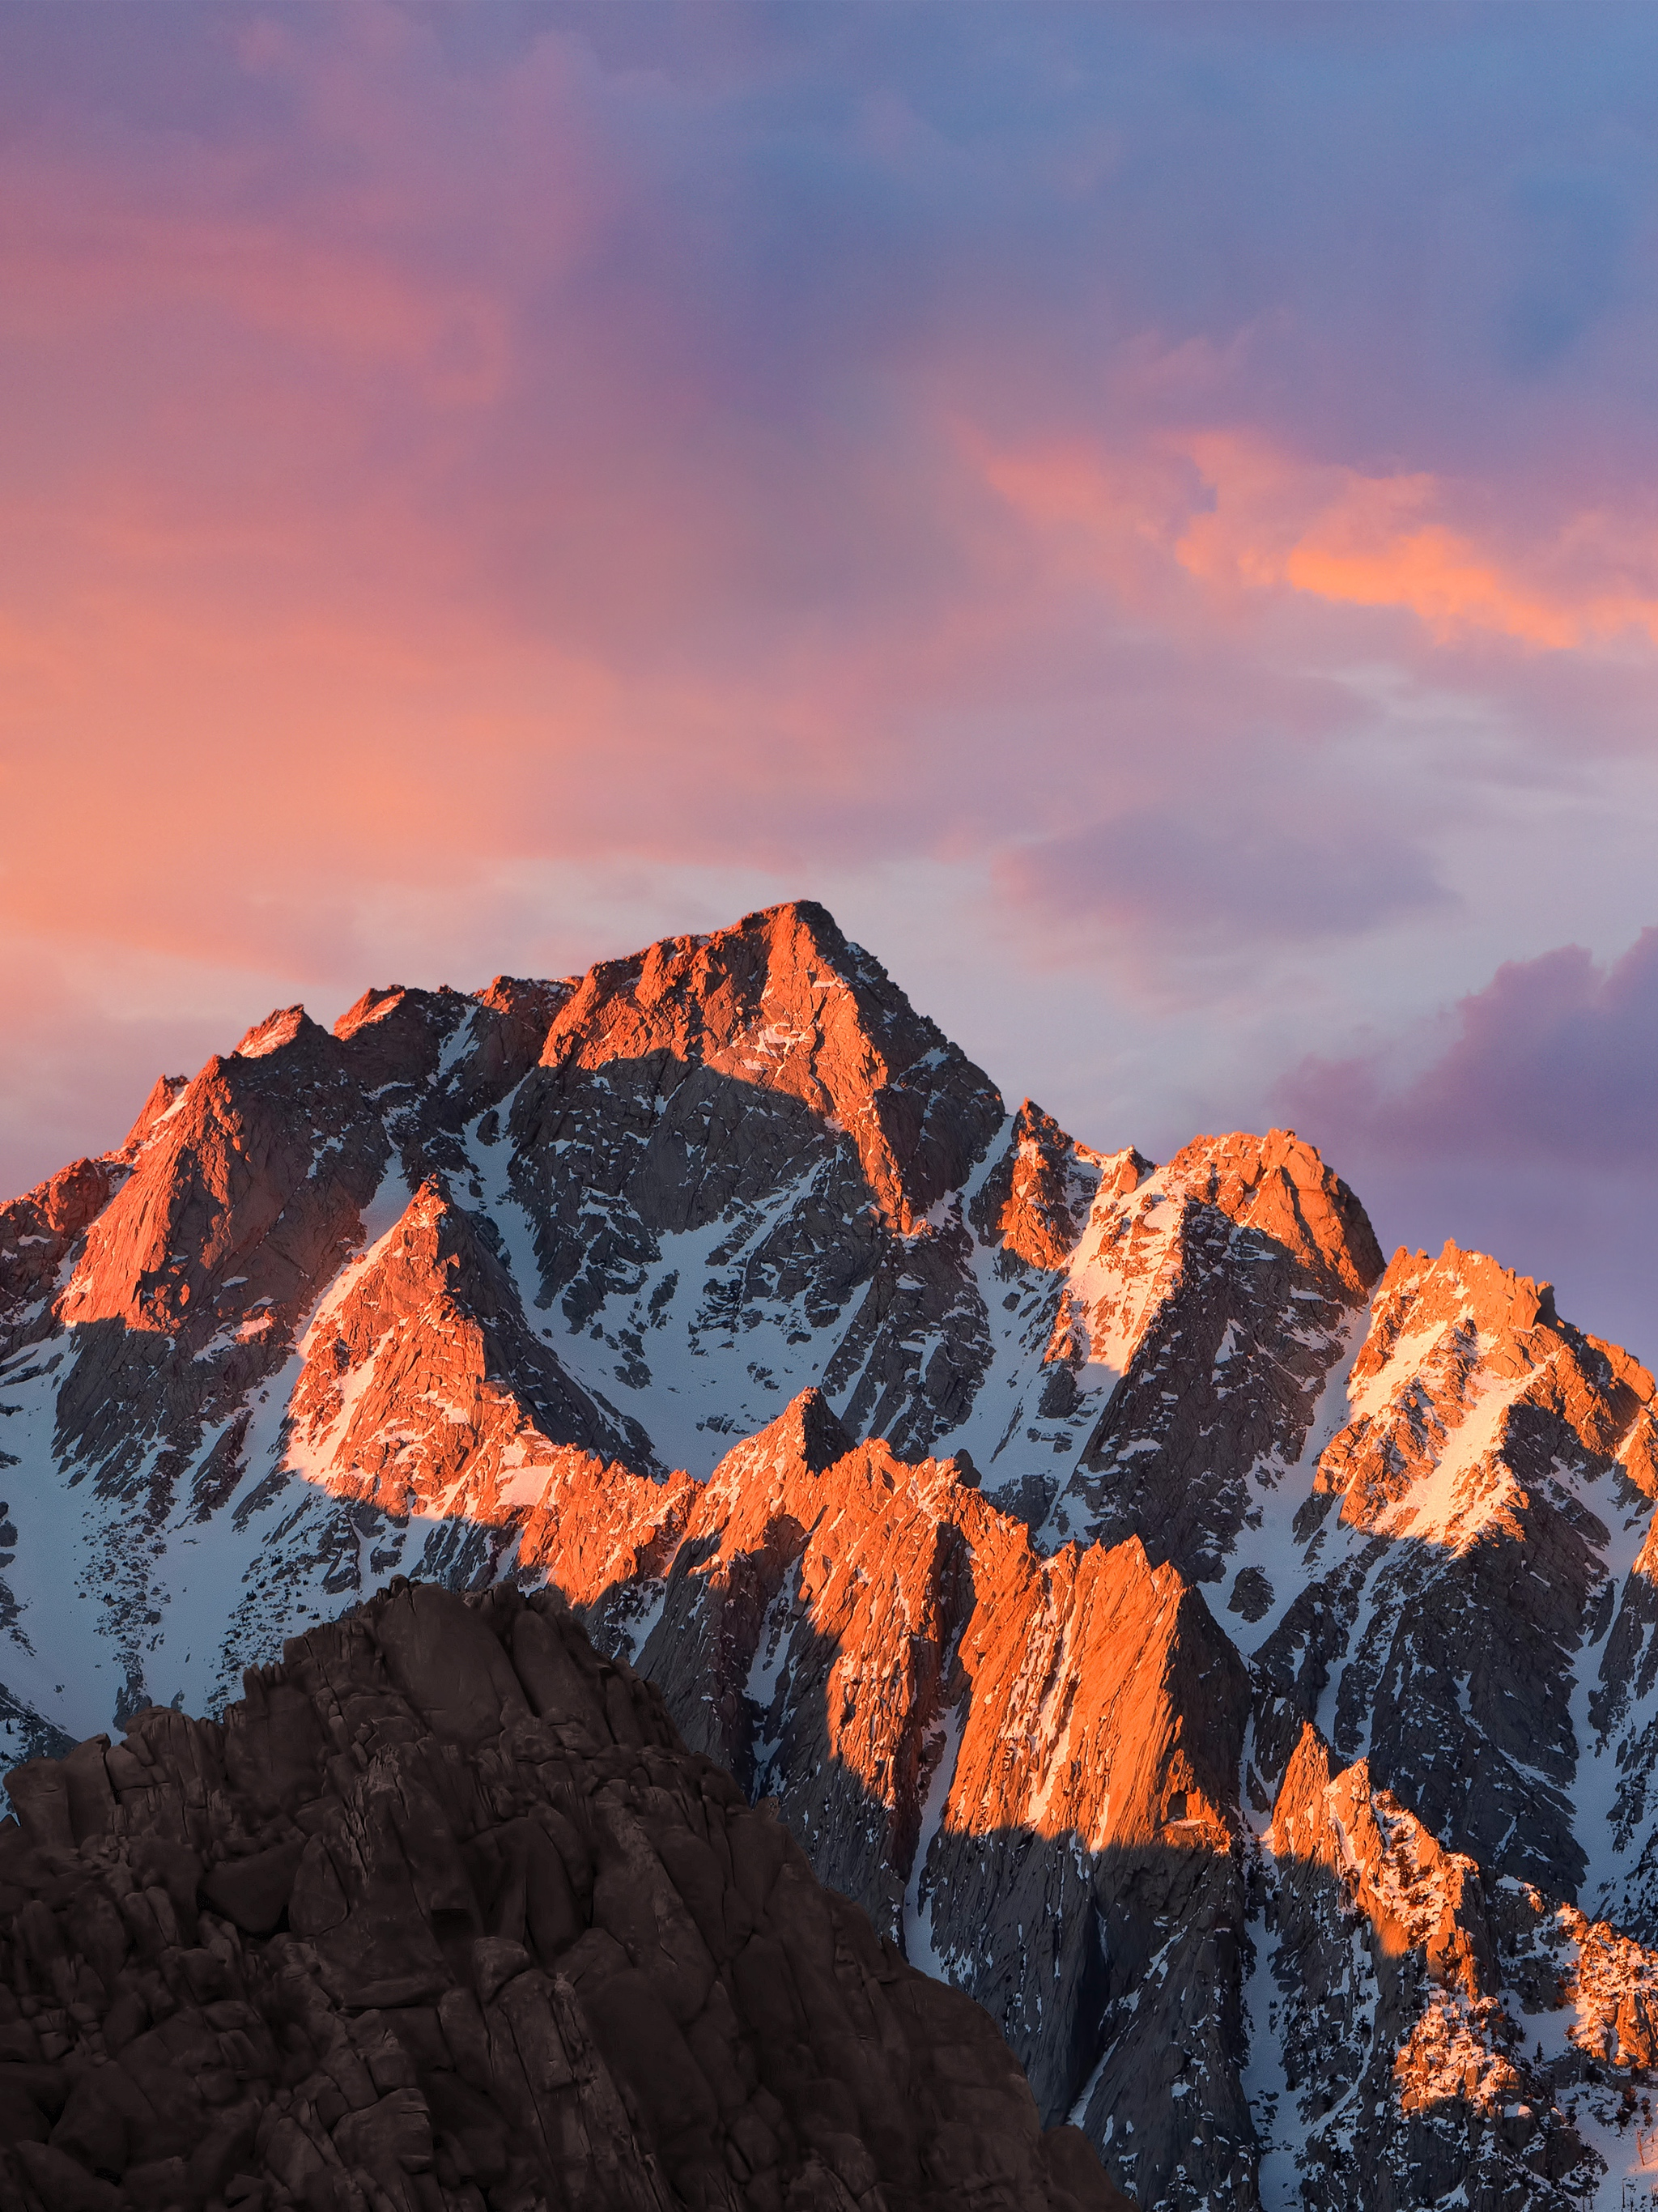 4k wallpapers of macos big sur, apple, layers, fluidic, colorful, wwdc, stock, aesthetic, 2020,. Download The New Macos Sierra Wallpaper For Iphone Ipad And Desktop